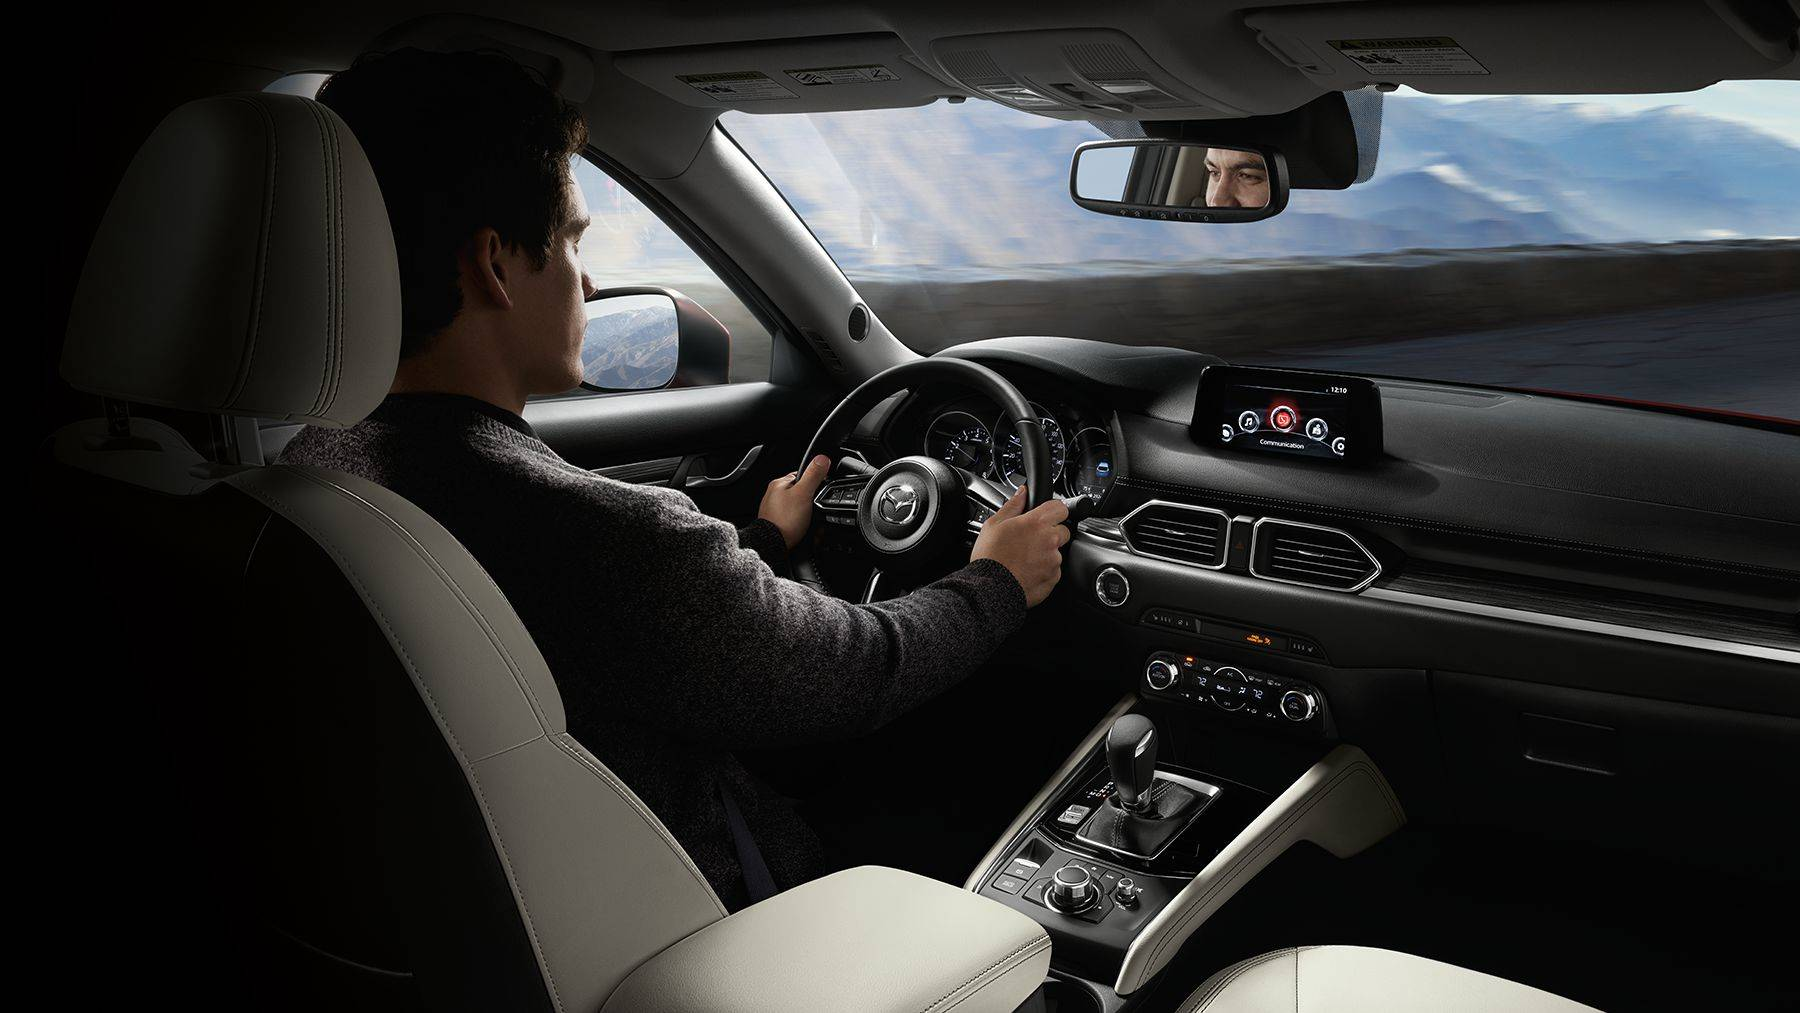 Take Command in the Mazda CX-5!